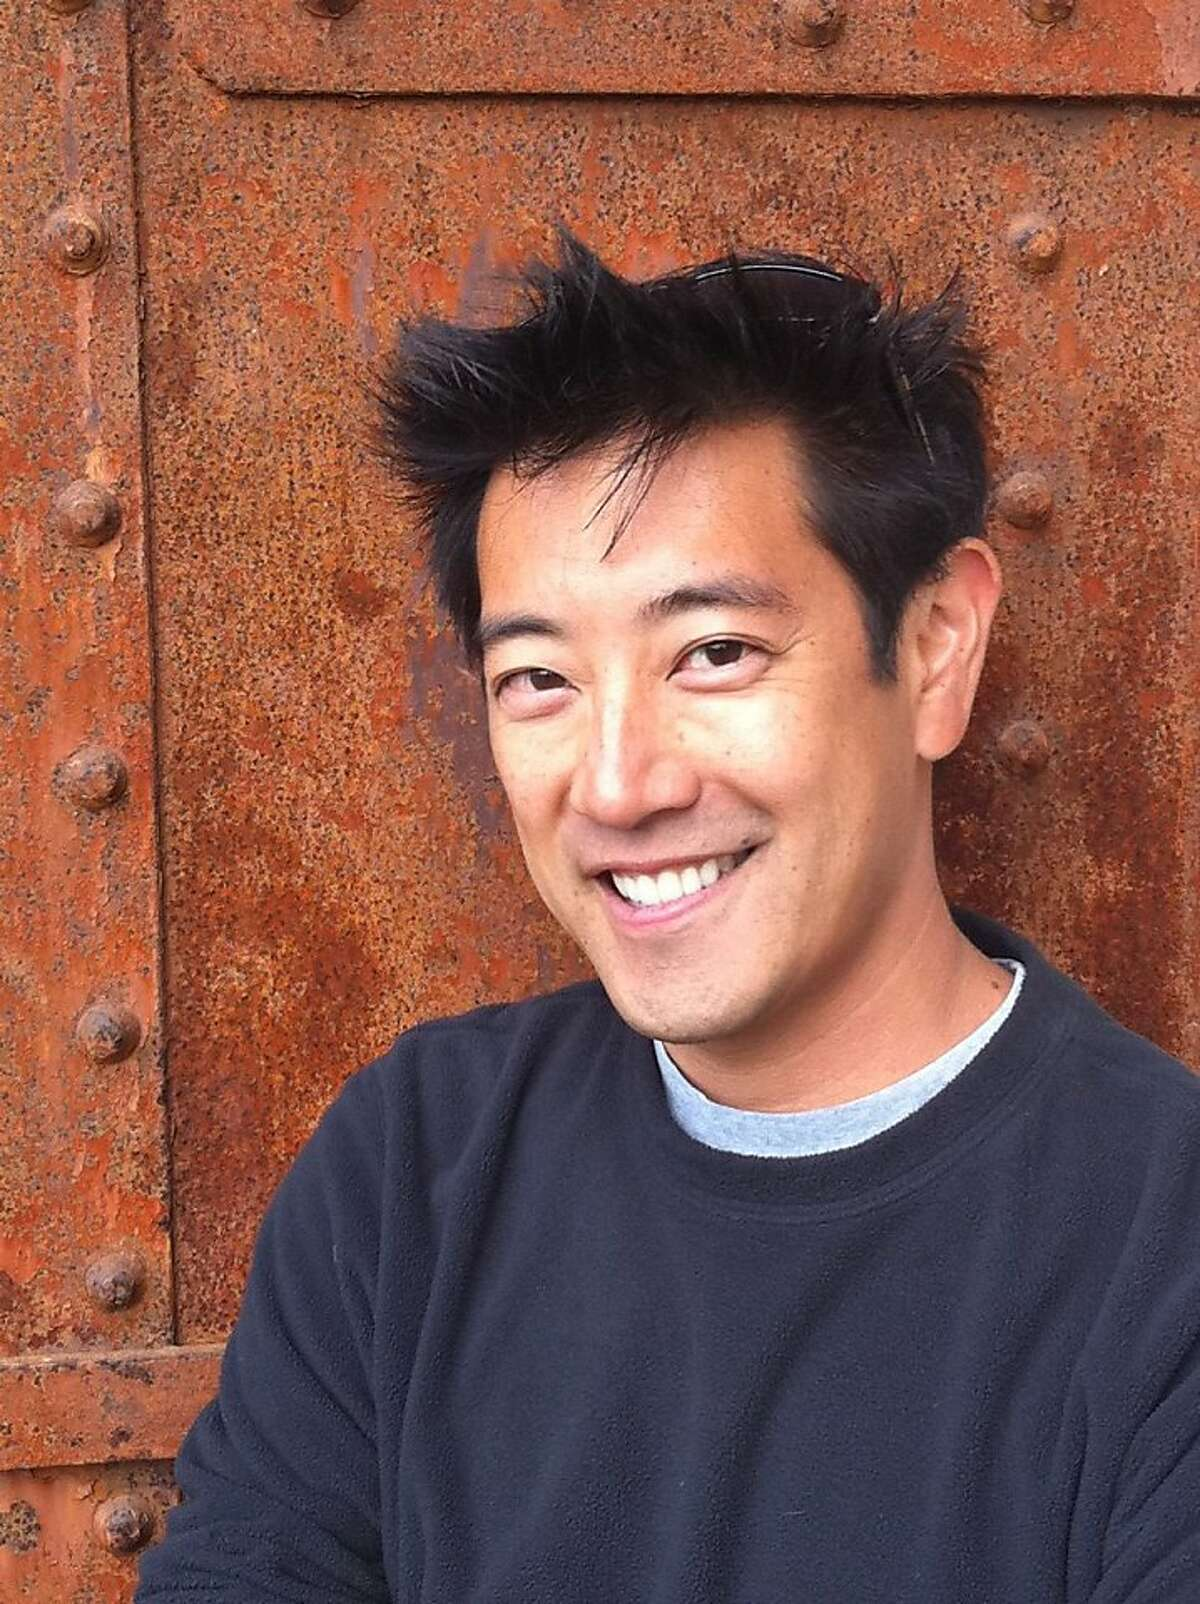 Mythbusters host Grant Imahara is one of the Bachelors featured in the Guardsmen June 23 auction. June 2011. Courtesy of Grant Imahara.